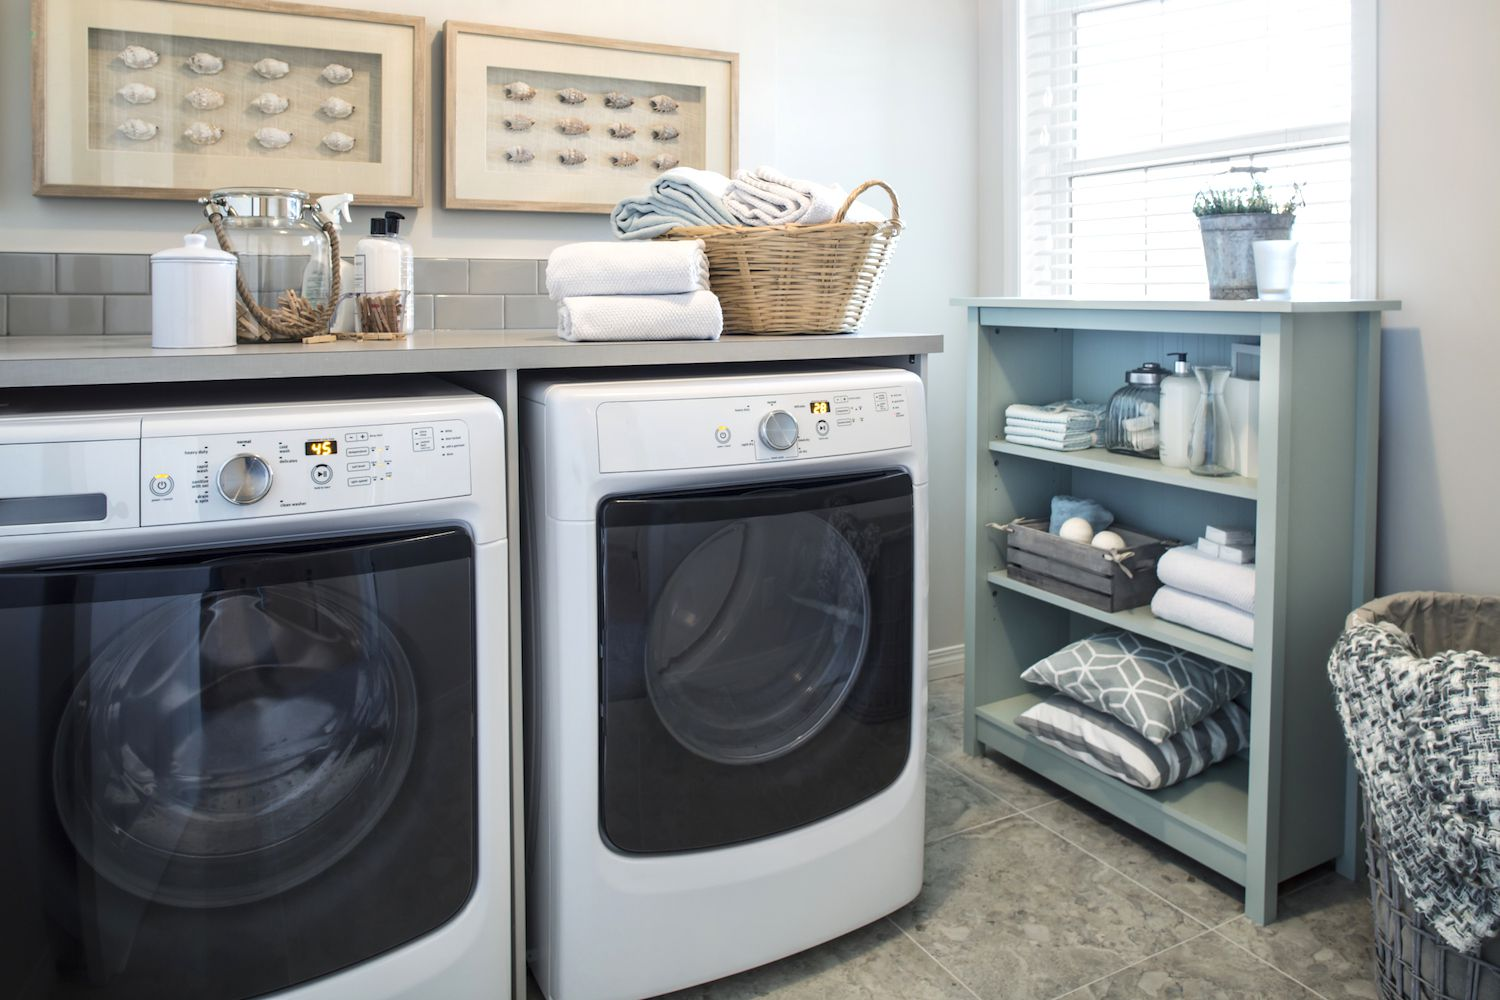 The 9 Best Washer & Dryer Sets of 2020